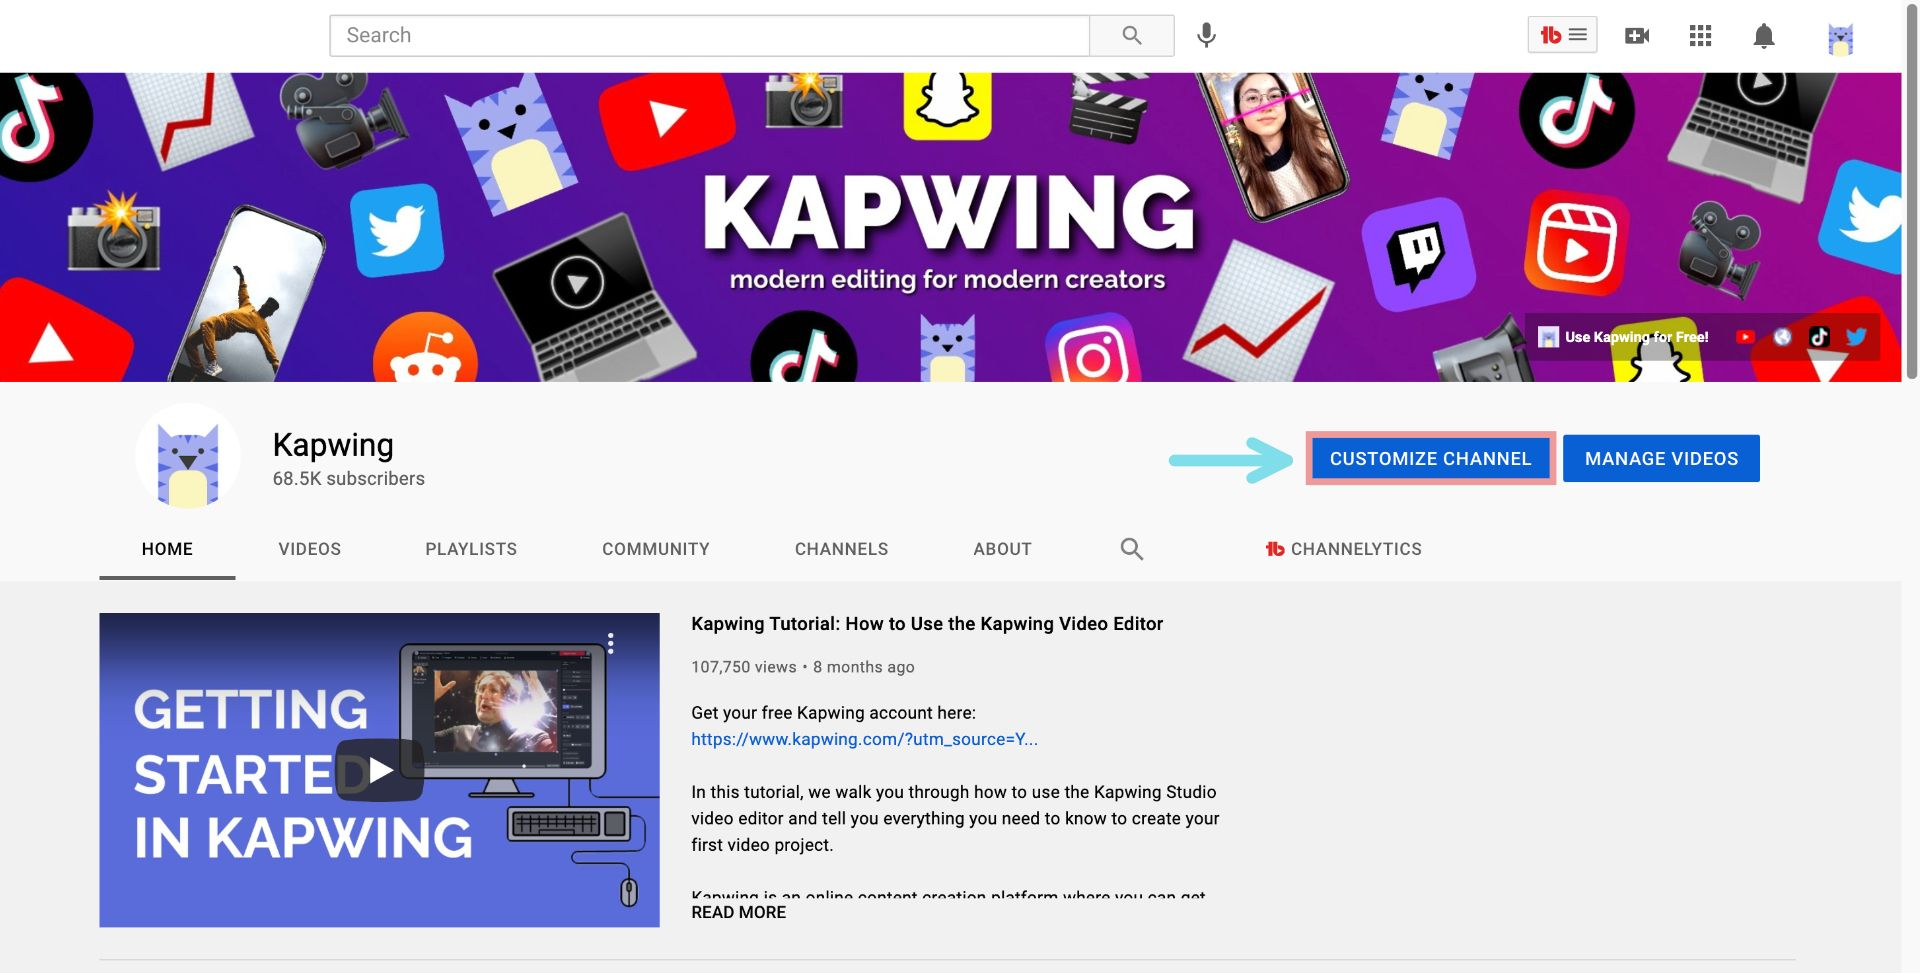 A screenshot showing how to customize a YouTube channel's branding.